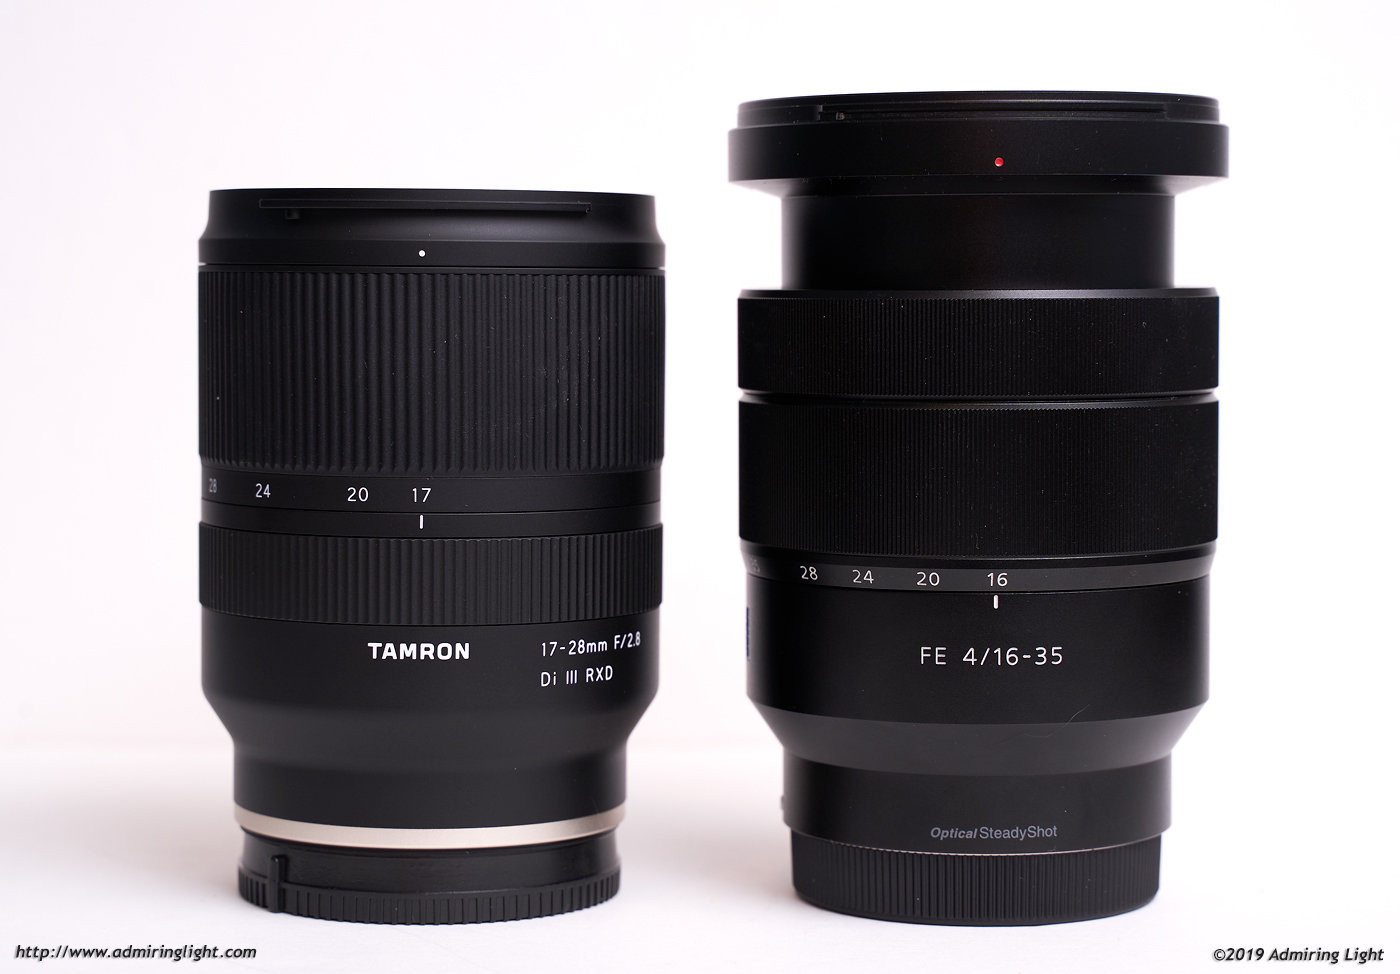 Tamron 17-28mm f/2.8 vs Sony/Zeiss 16-35mm f/4